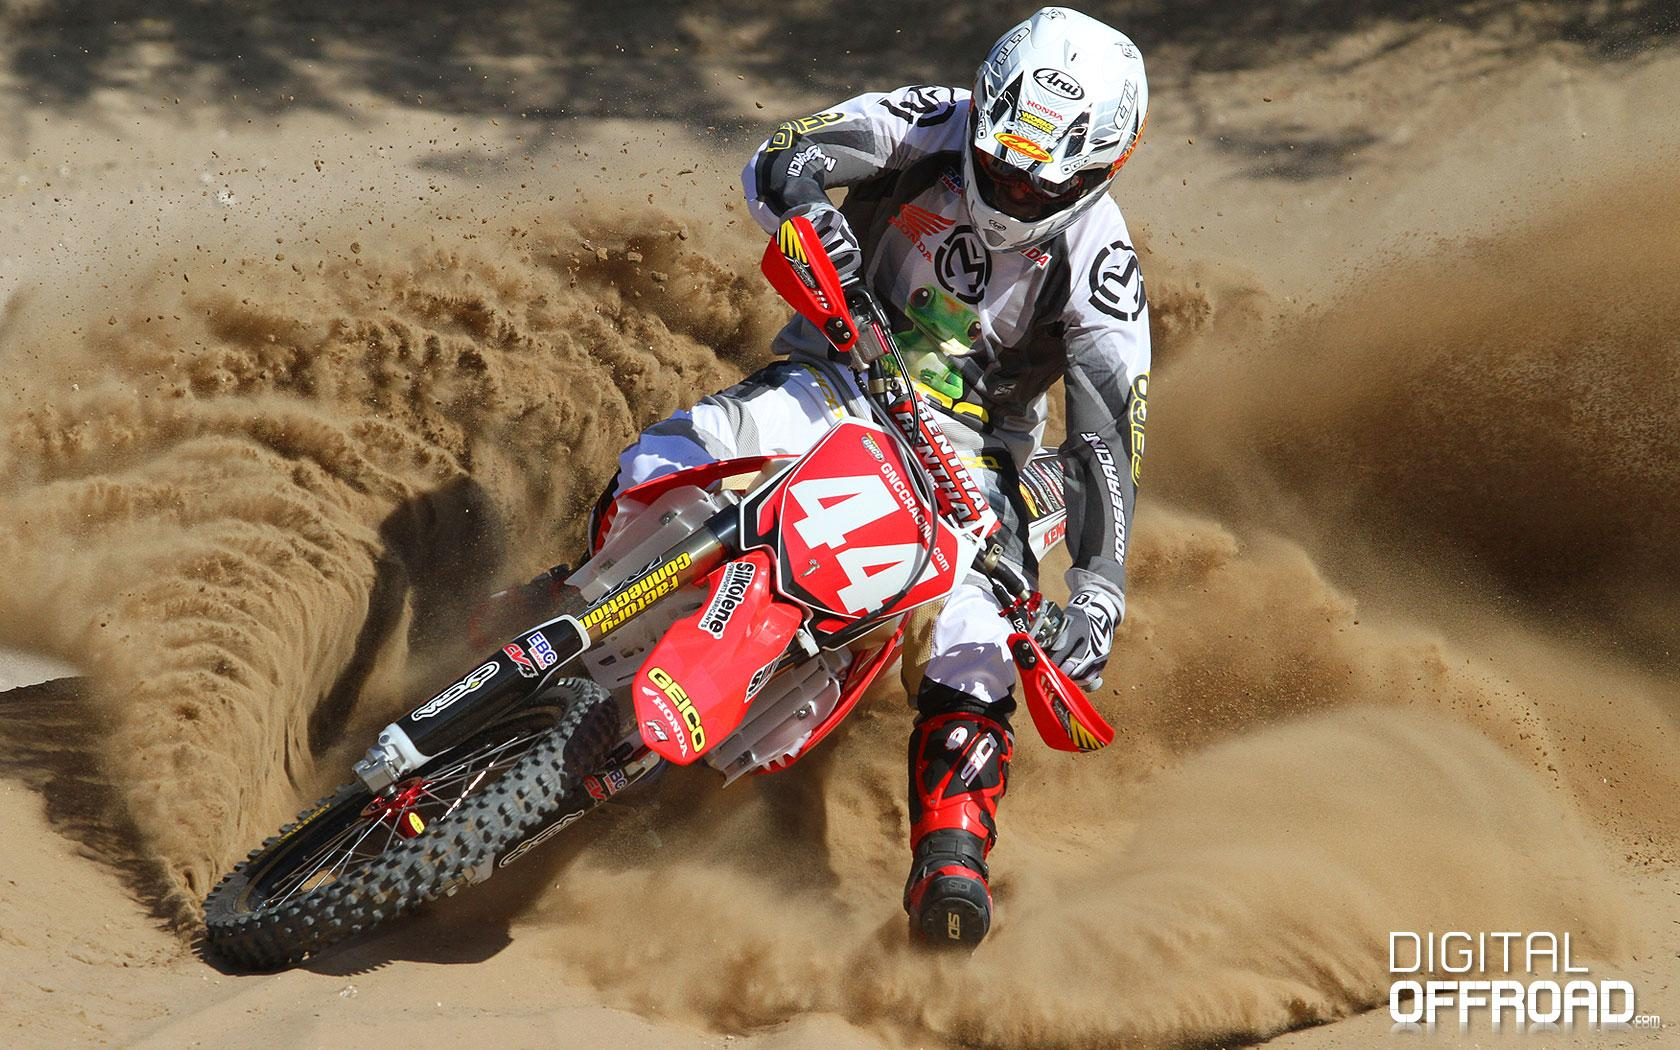 Wallpaper Wednesday: JG/Geico/Honda Team Shoot | Digital Off-Road ...